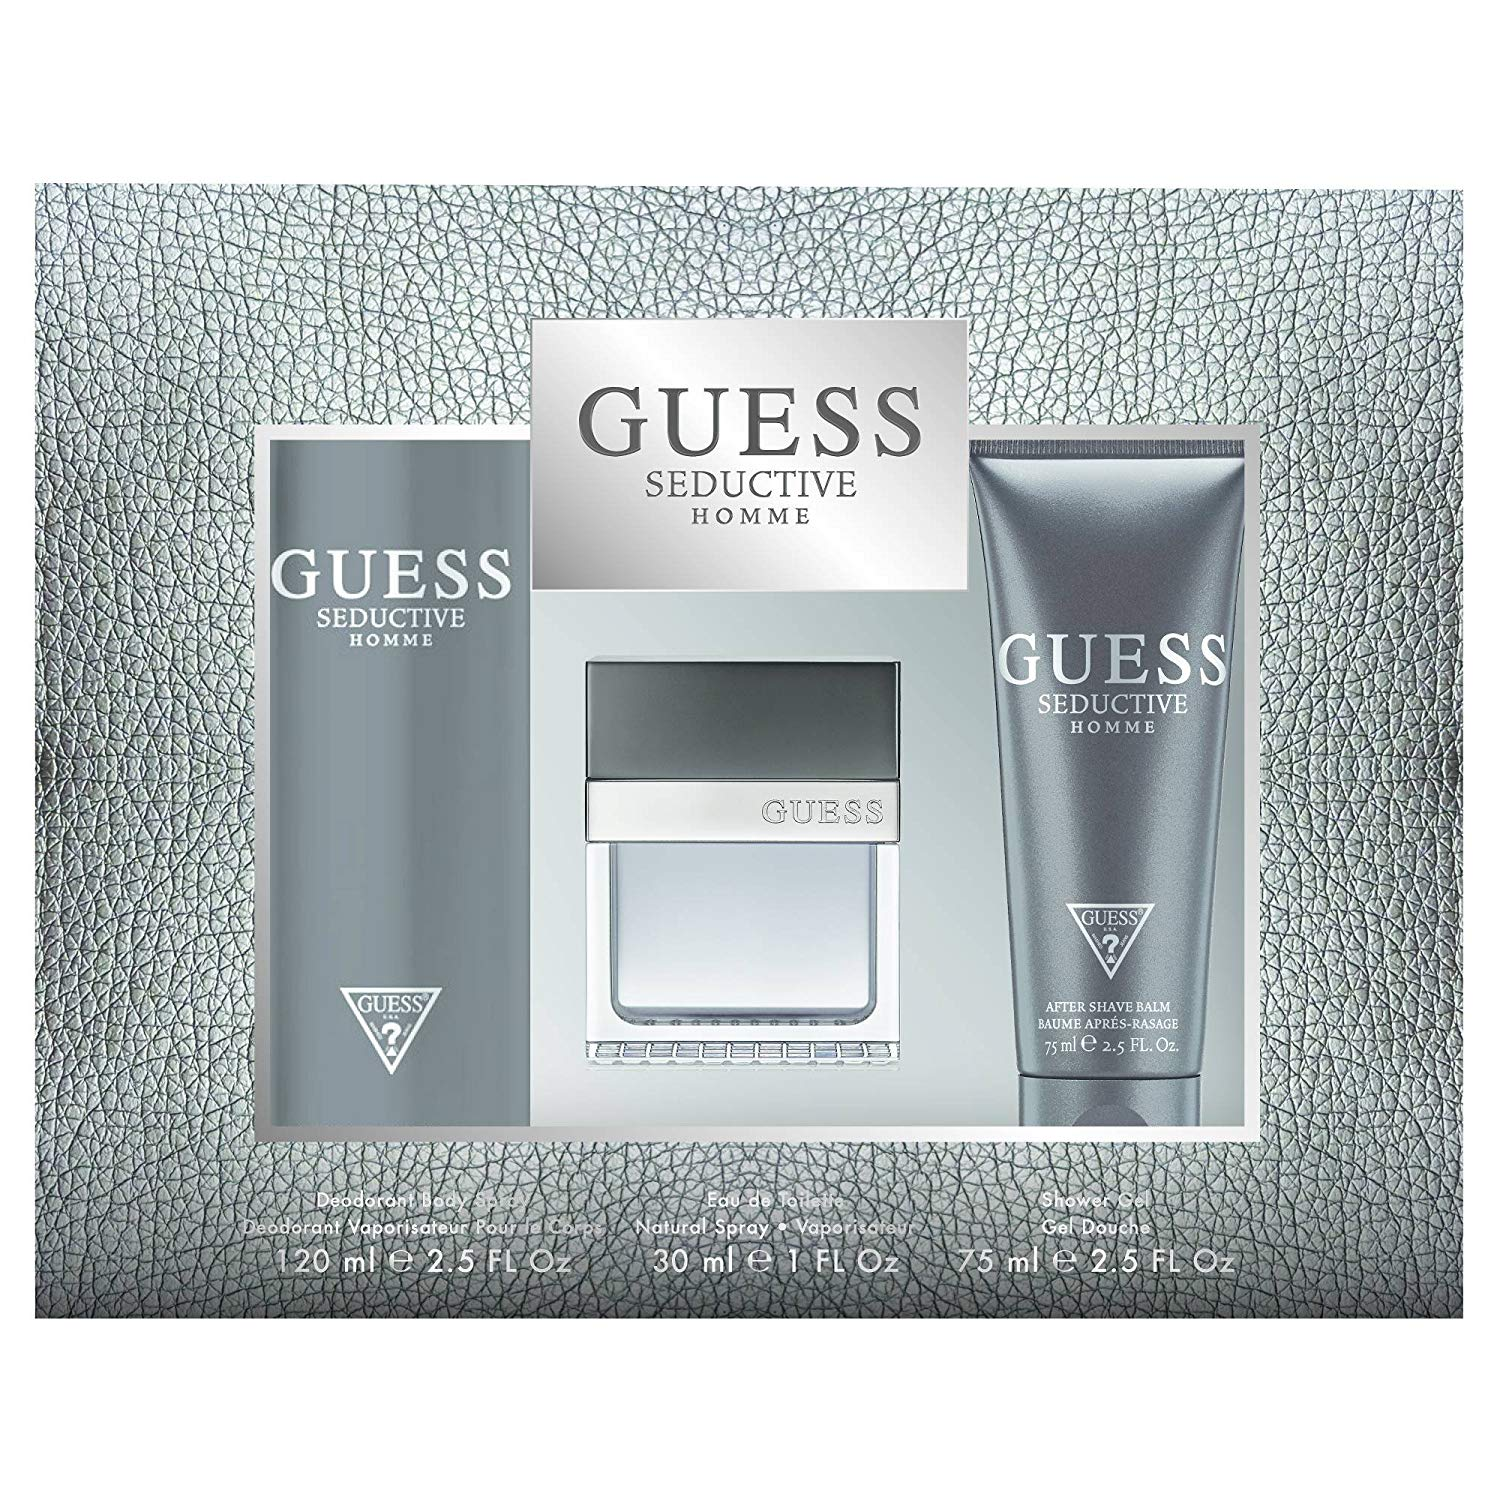 Guess Seductive Homme by Guess Men's Fragrance Gift Set, pack of 1